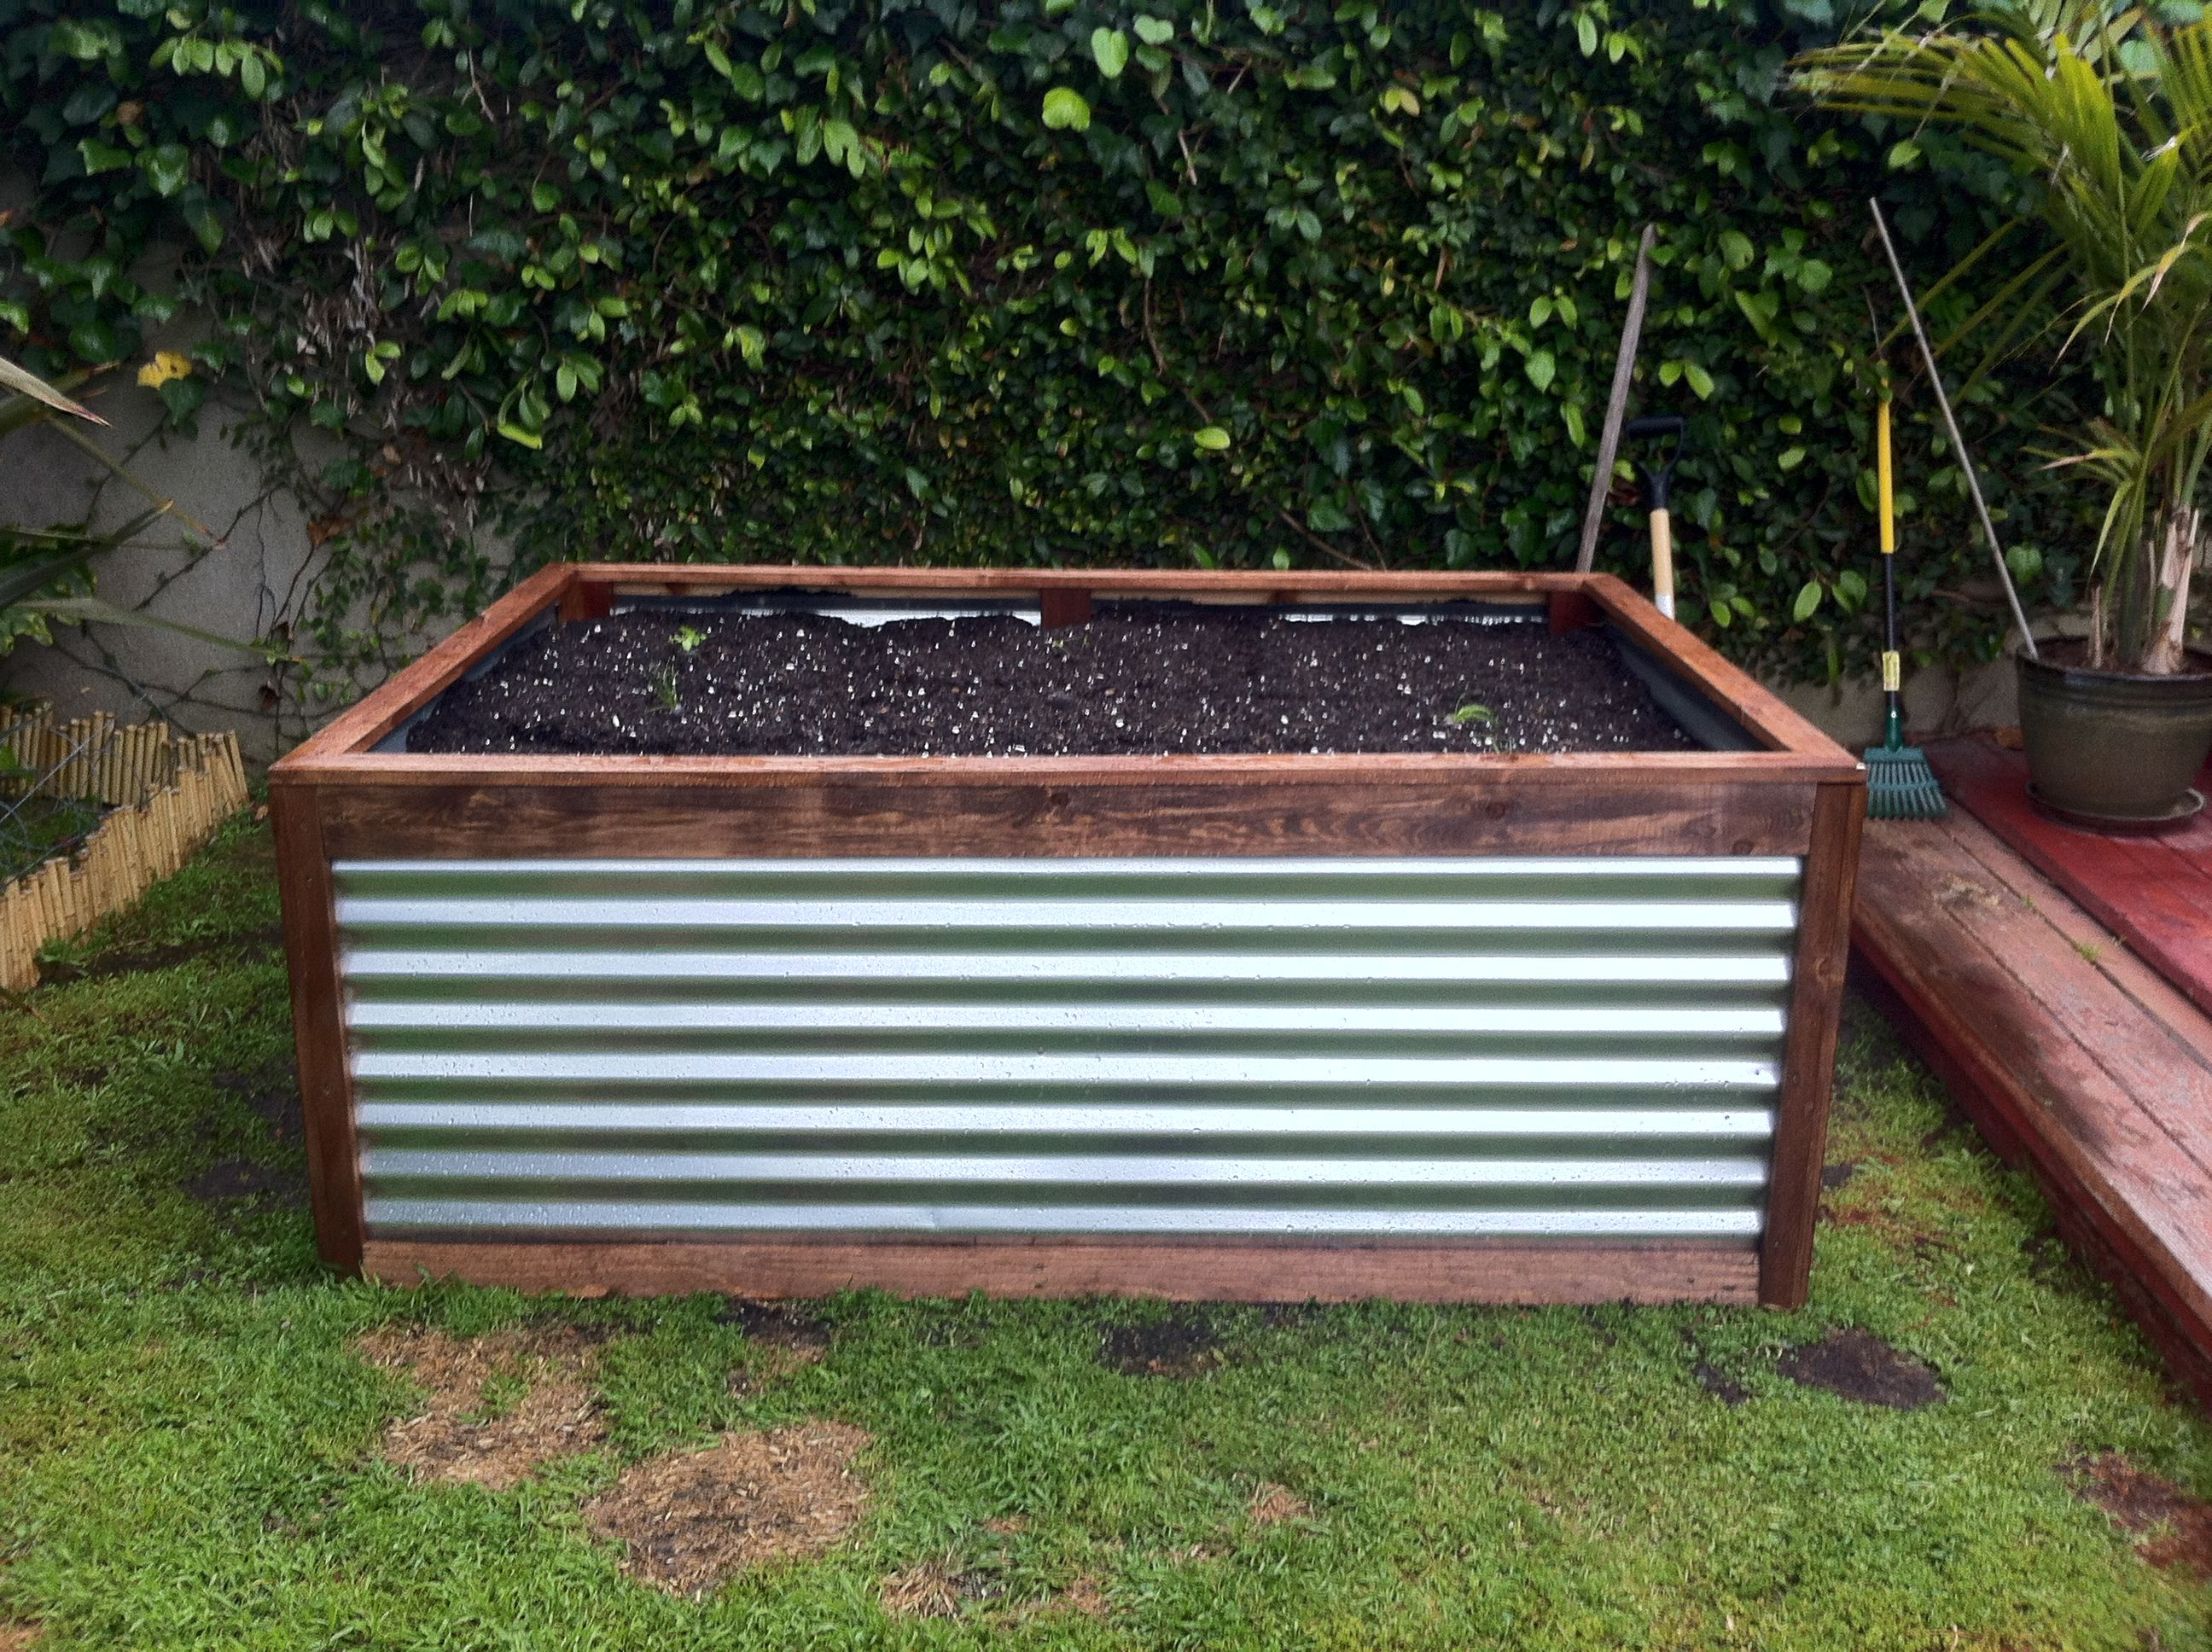 Raised Galvanized Steel Planter box that Peter built. Easy to build and  looks great!